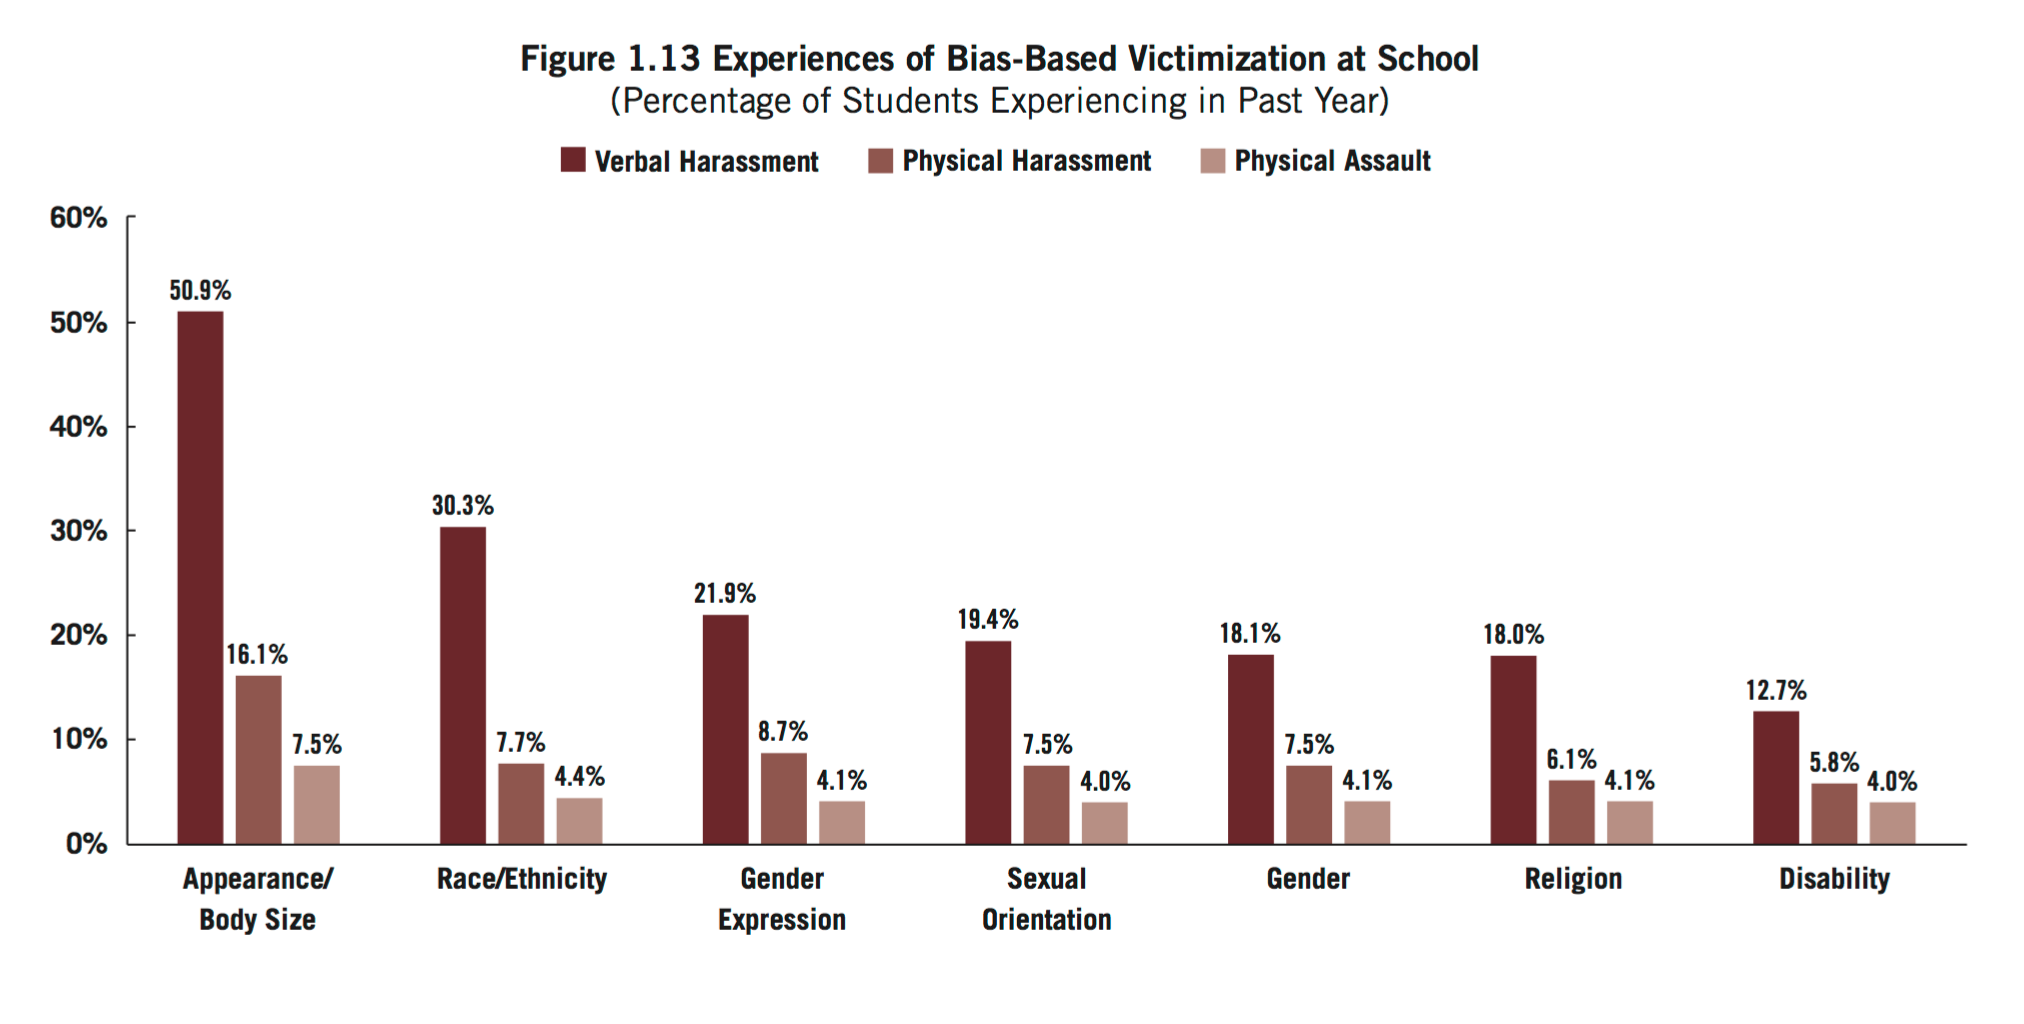 Experiences of Bias-Based Victimization at School